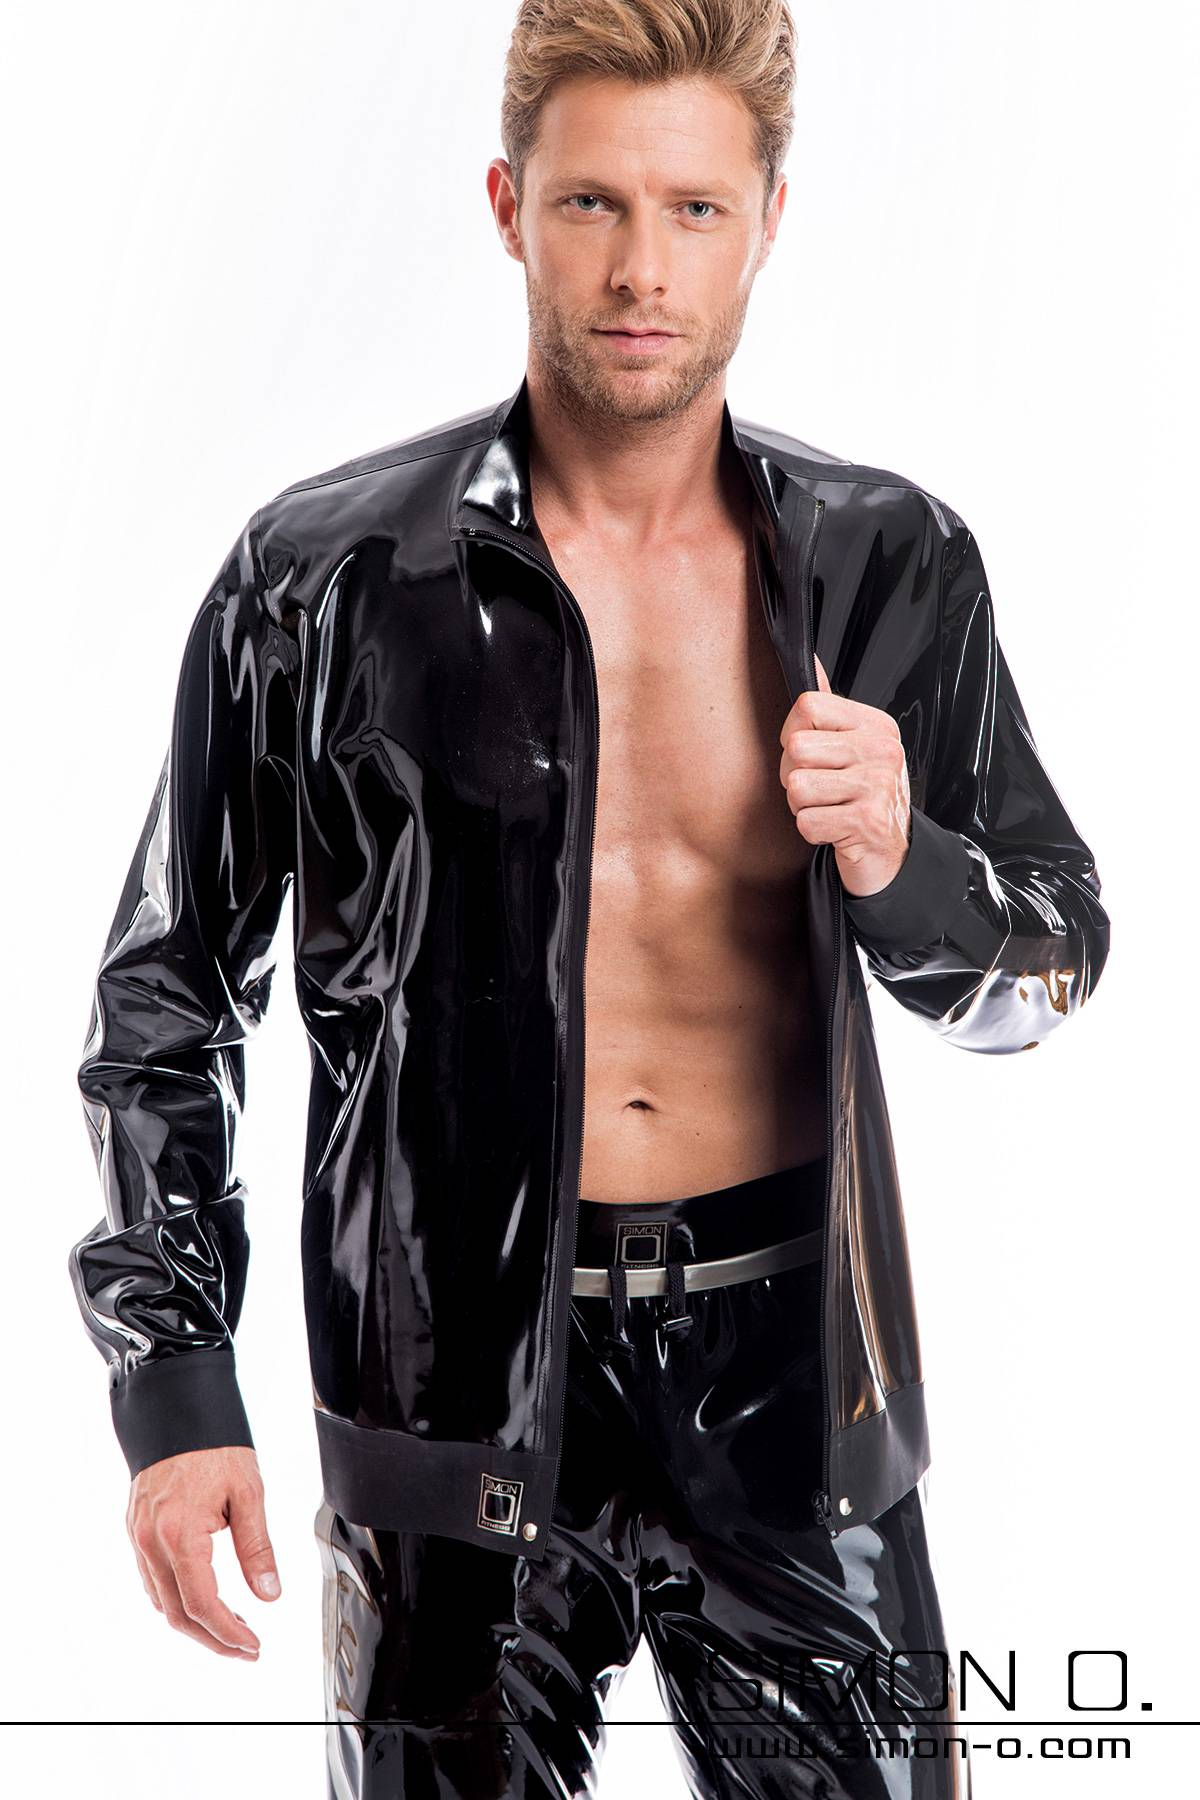 A man wears a latex jacket in black with stand-up collar and pockets.